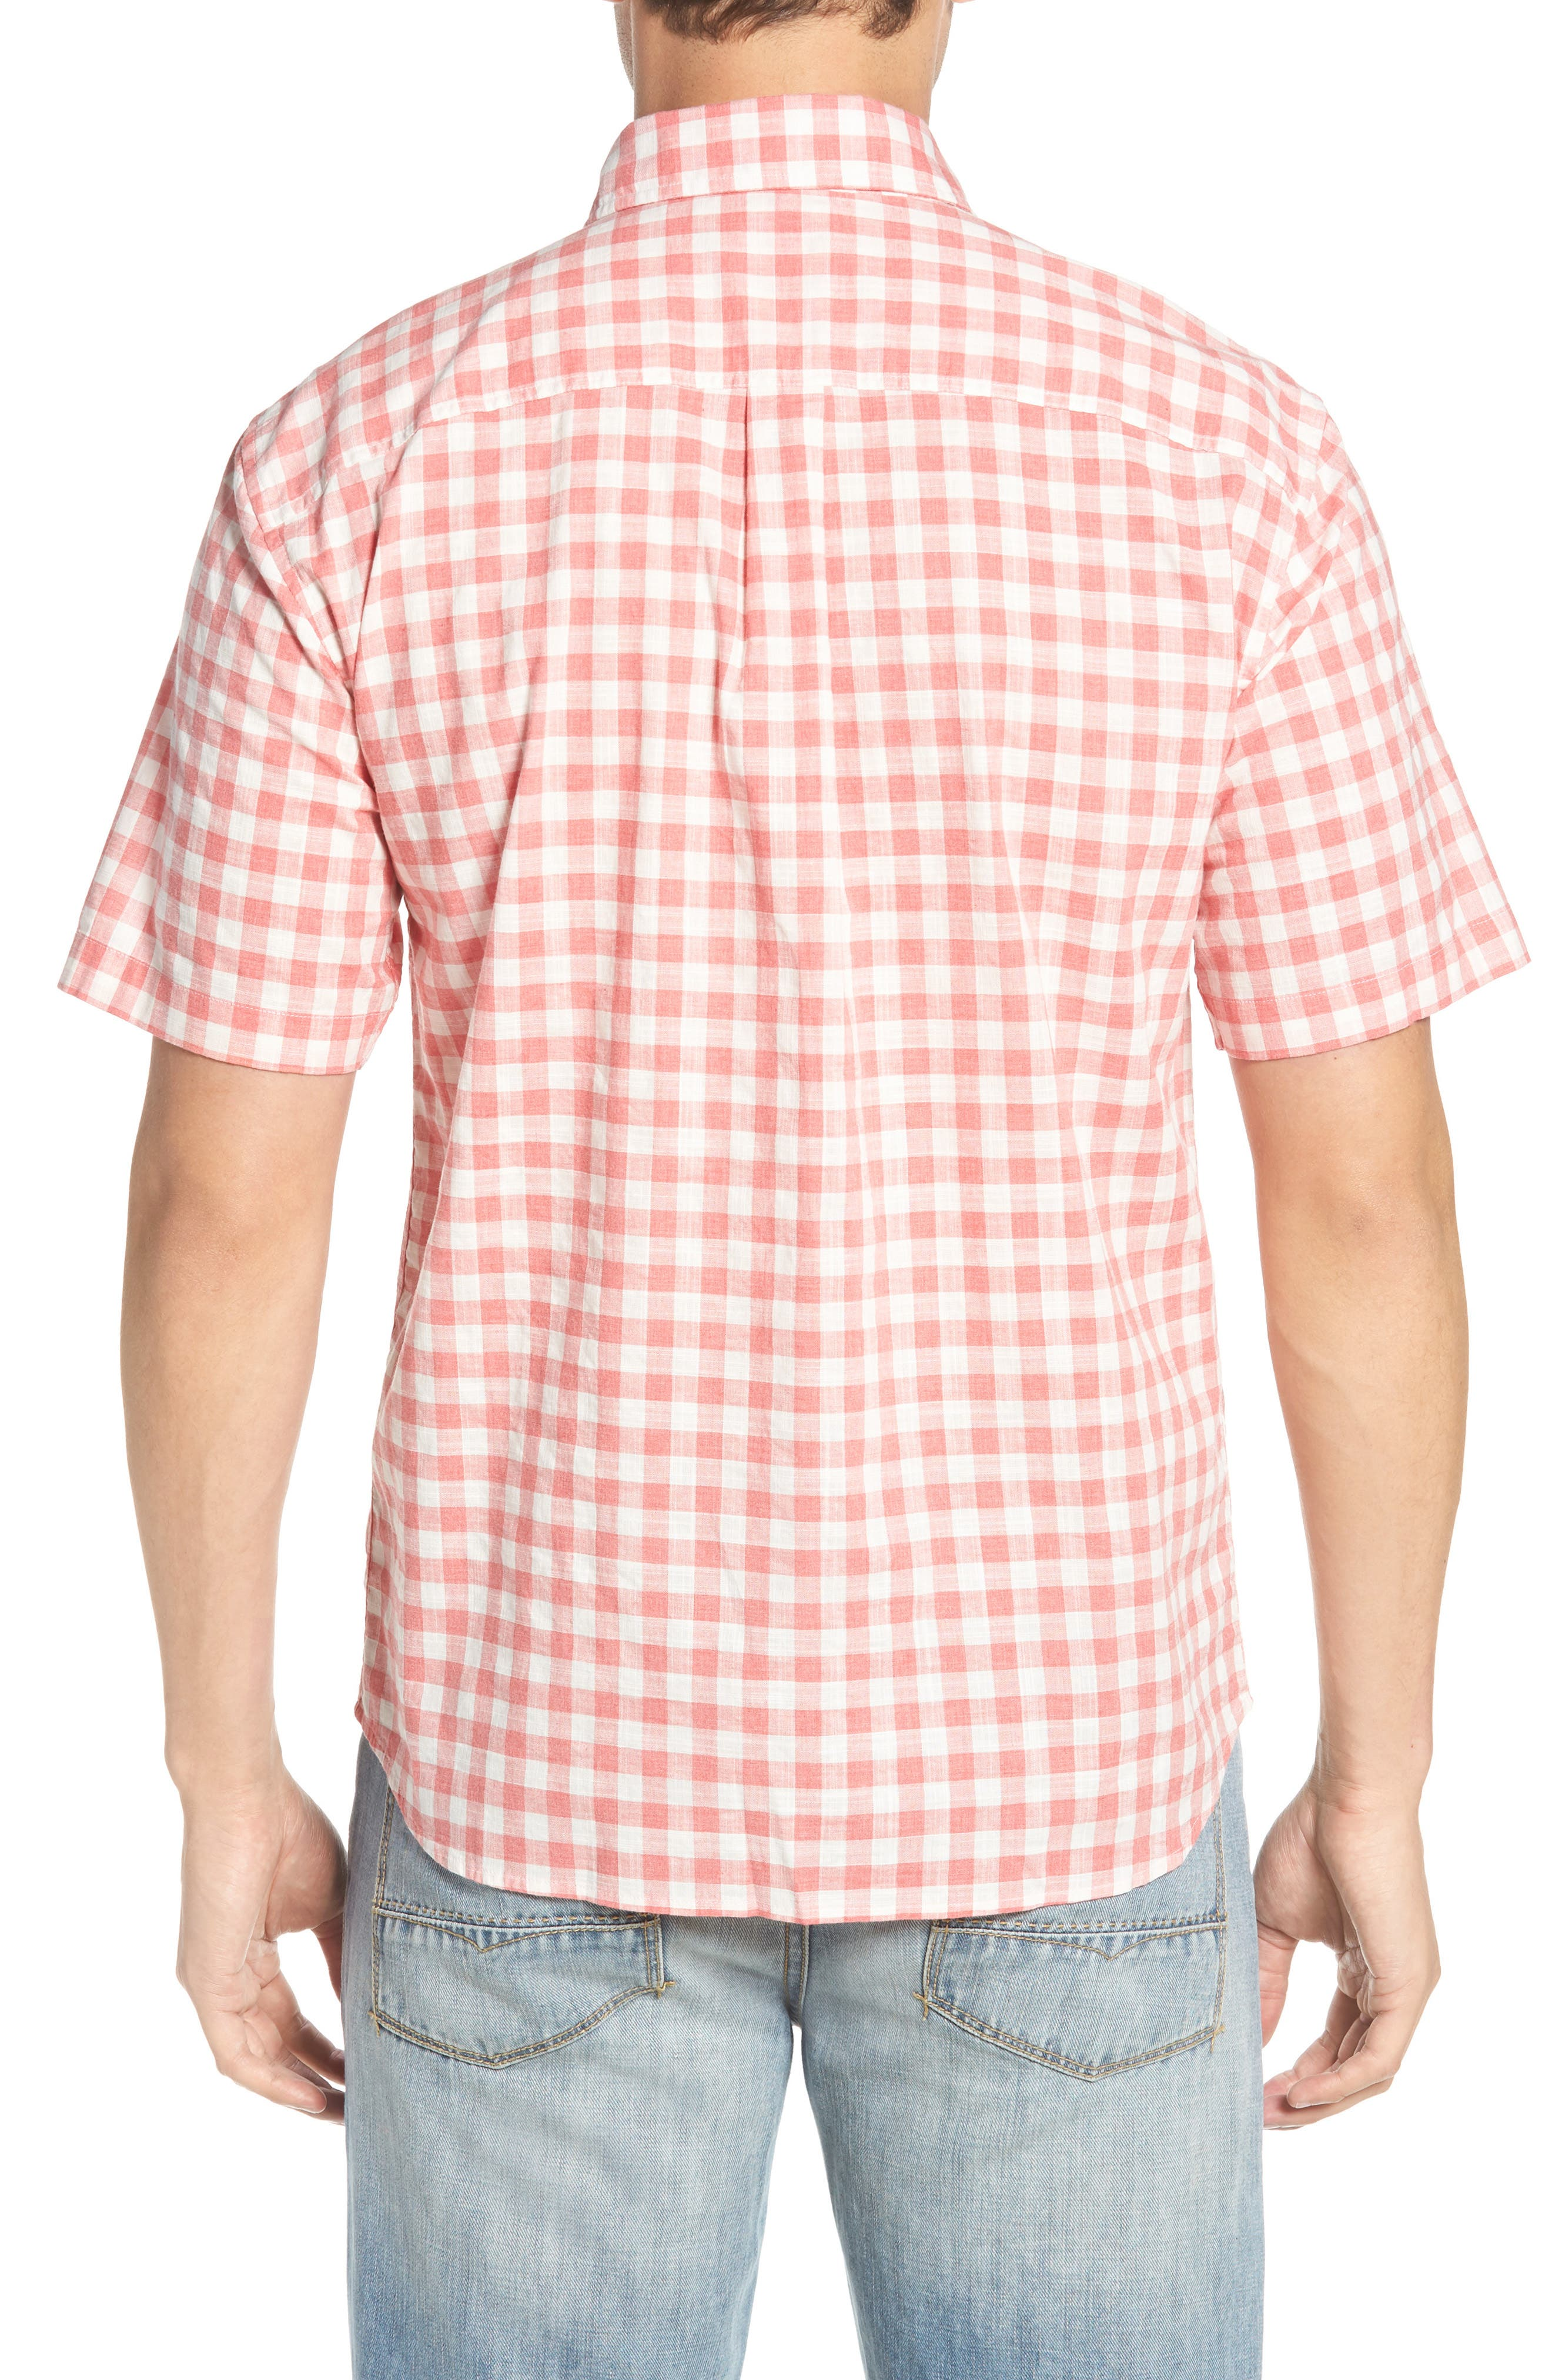 Watts Regular Fit Sport Shirt,                             Alternate thumbnail 2, color,                             CALYPSO